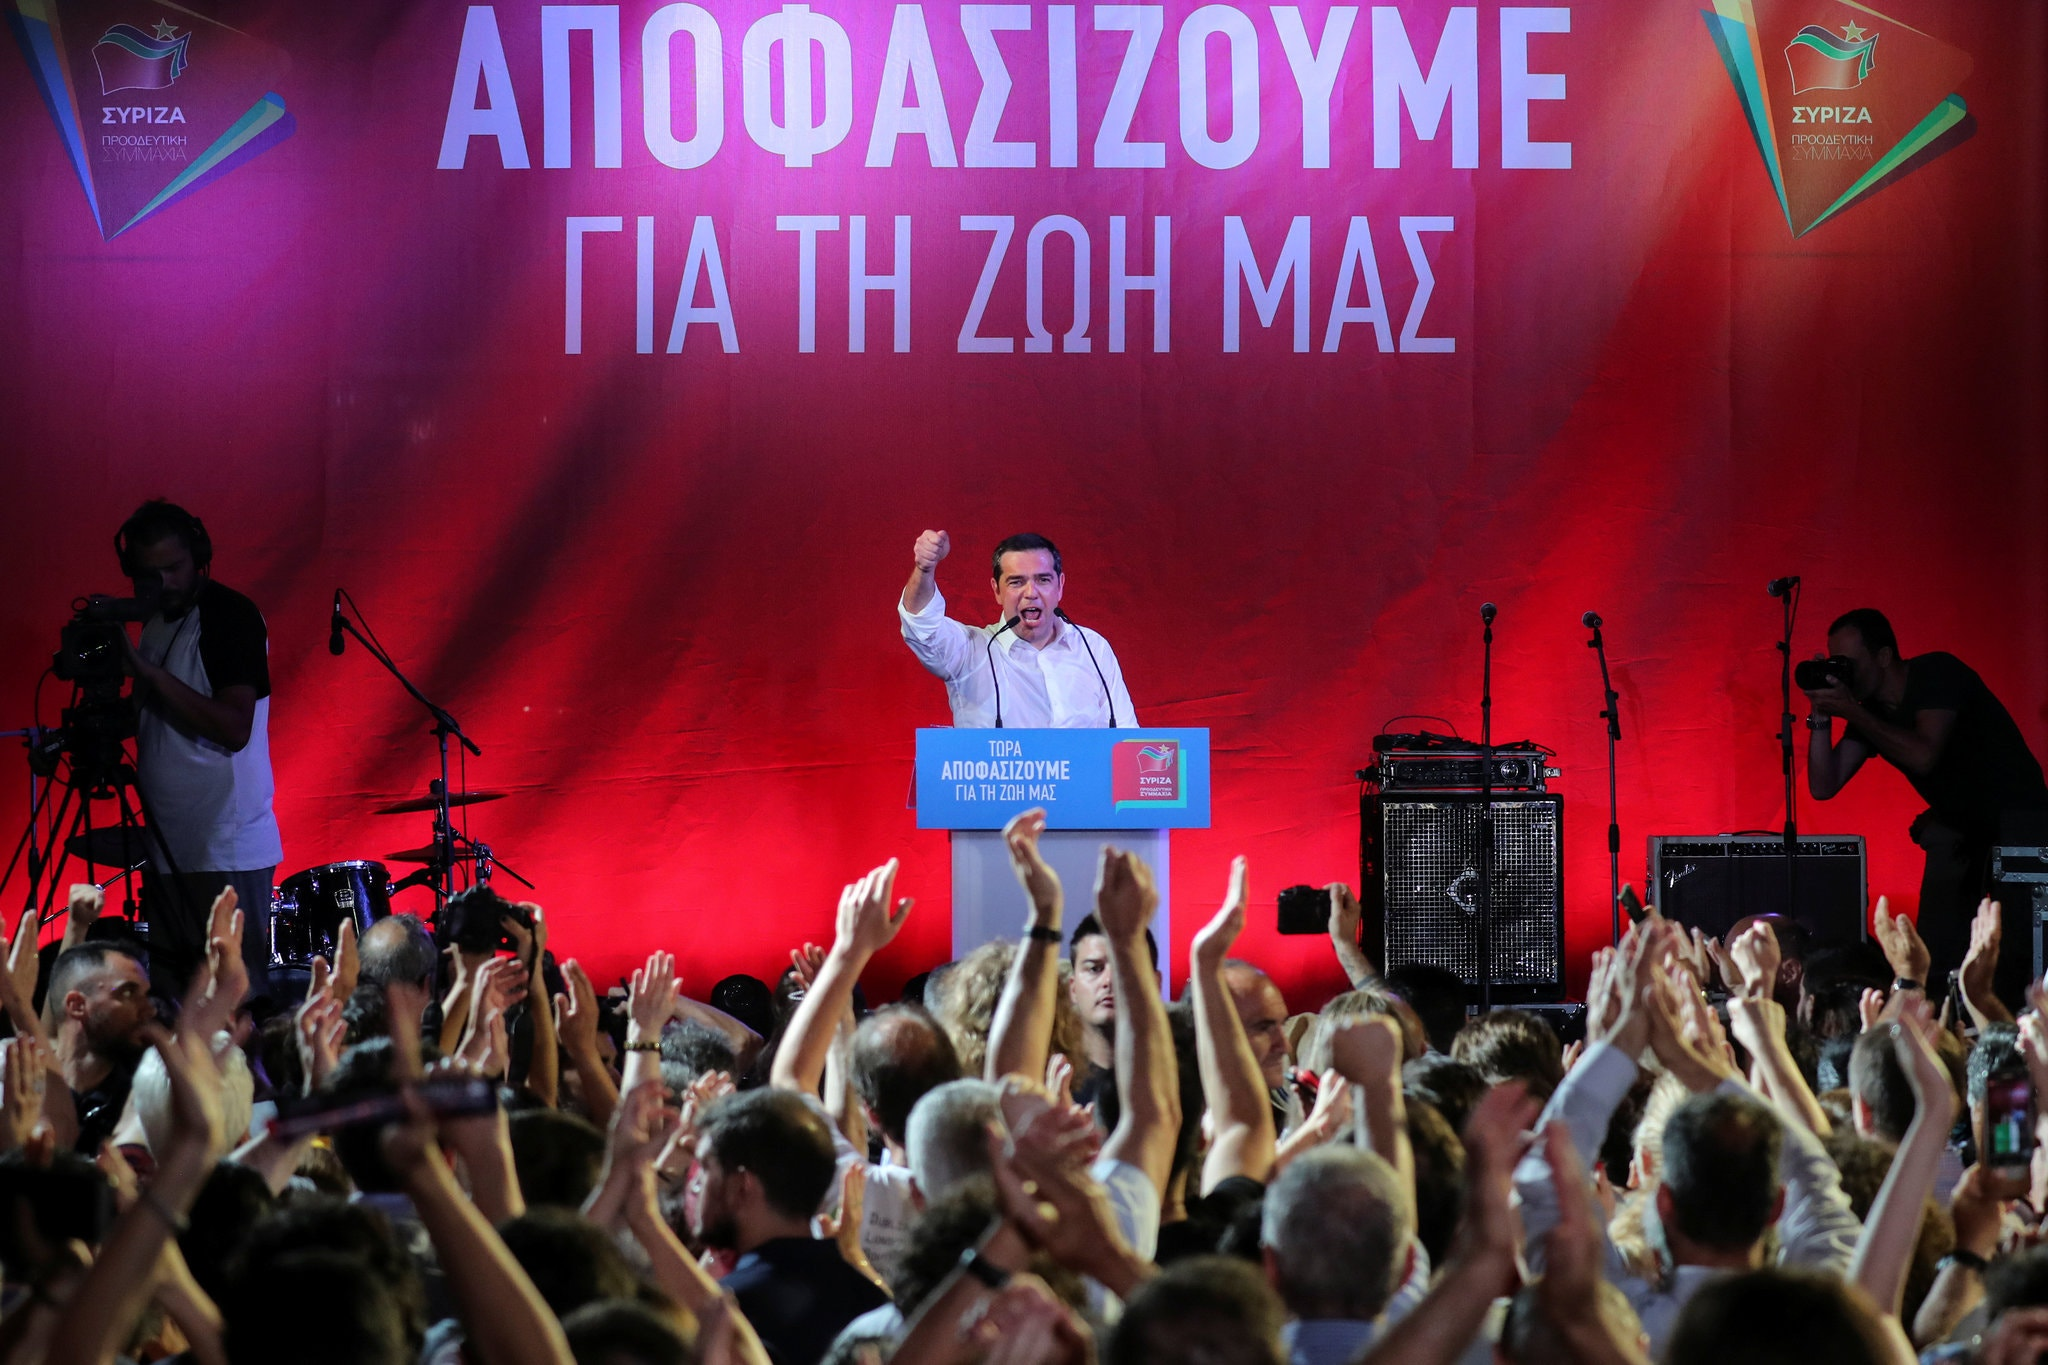 New York Times: Tsipras, Having Changed Greece, Now Seems Poised to Lose It